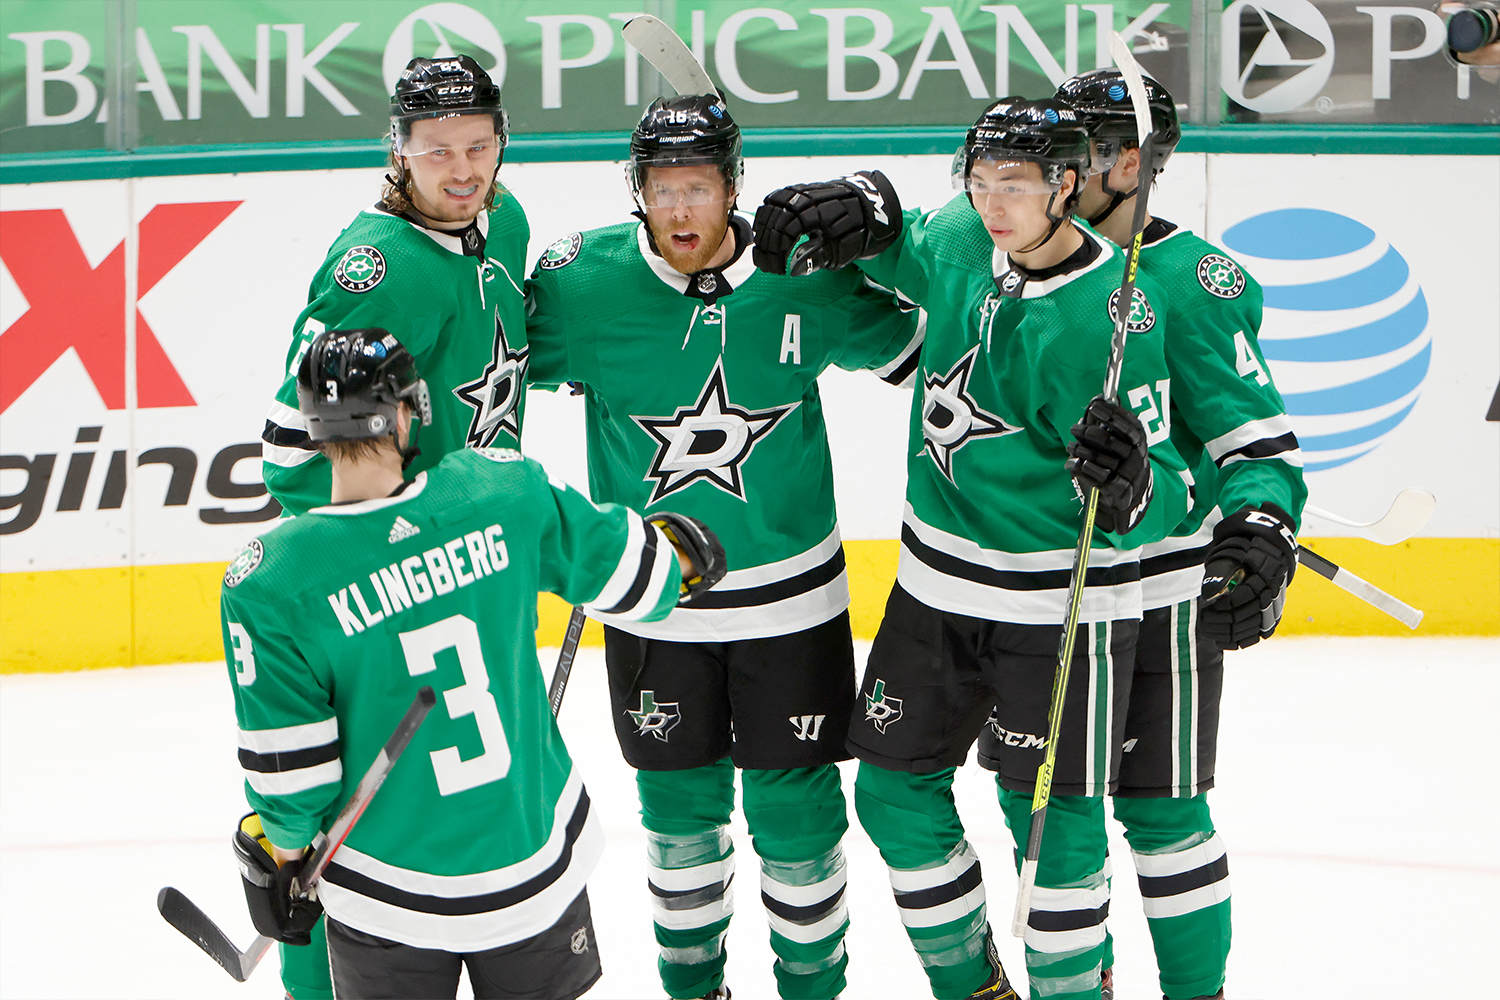 Joe Pavelski #16 of the Dallas Stars celebrates with Roope Hintz #24 of the Dallas Stars, Jason Robertson #21 of the Dallas Stars, Miro Heiskanen #4 of the Dallas Stars and John Klingberg #3 of the Dallas Stars after scoring a goal against the Tampa Bay Lightning at American Airlines Center on March 25, 2021